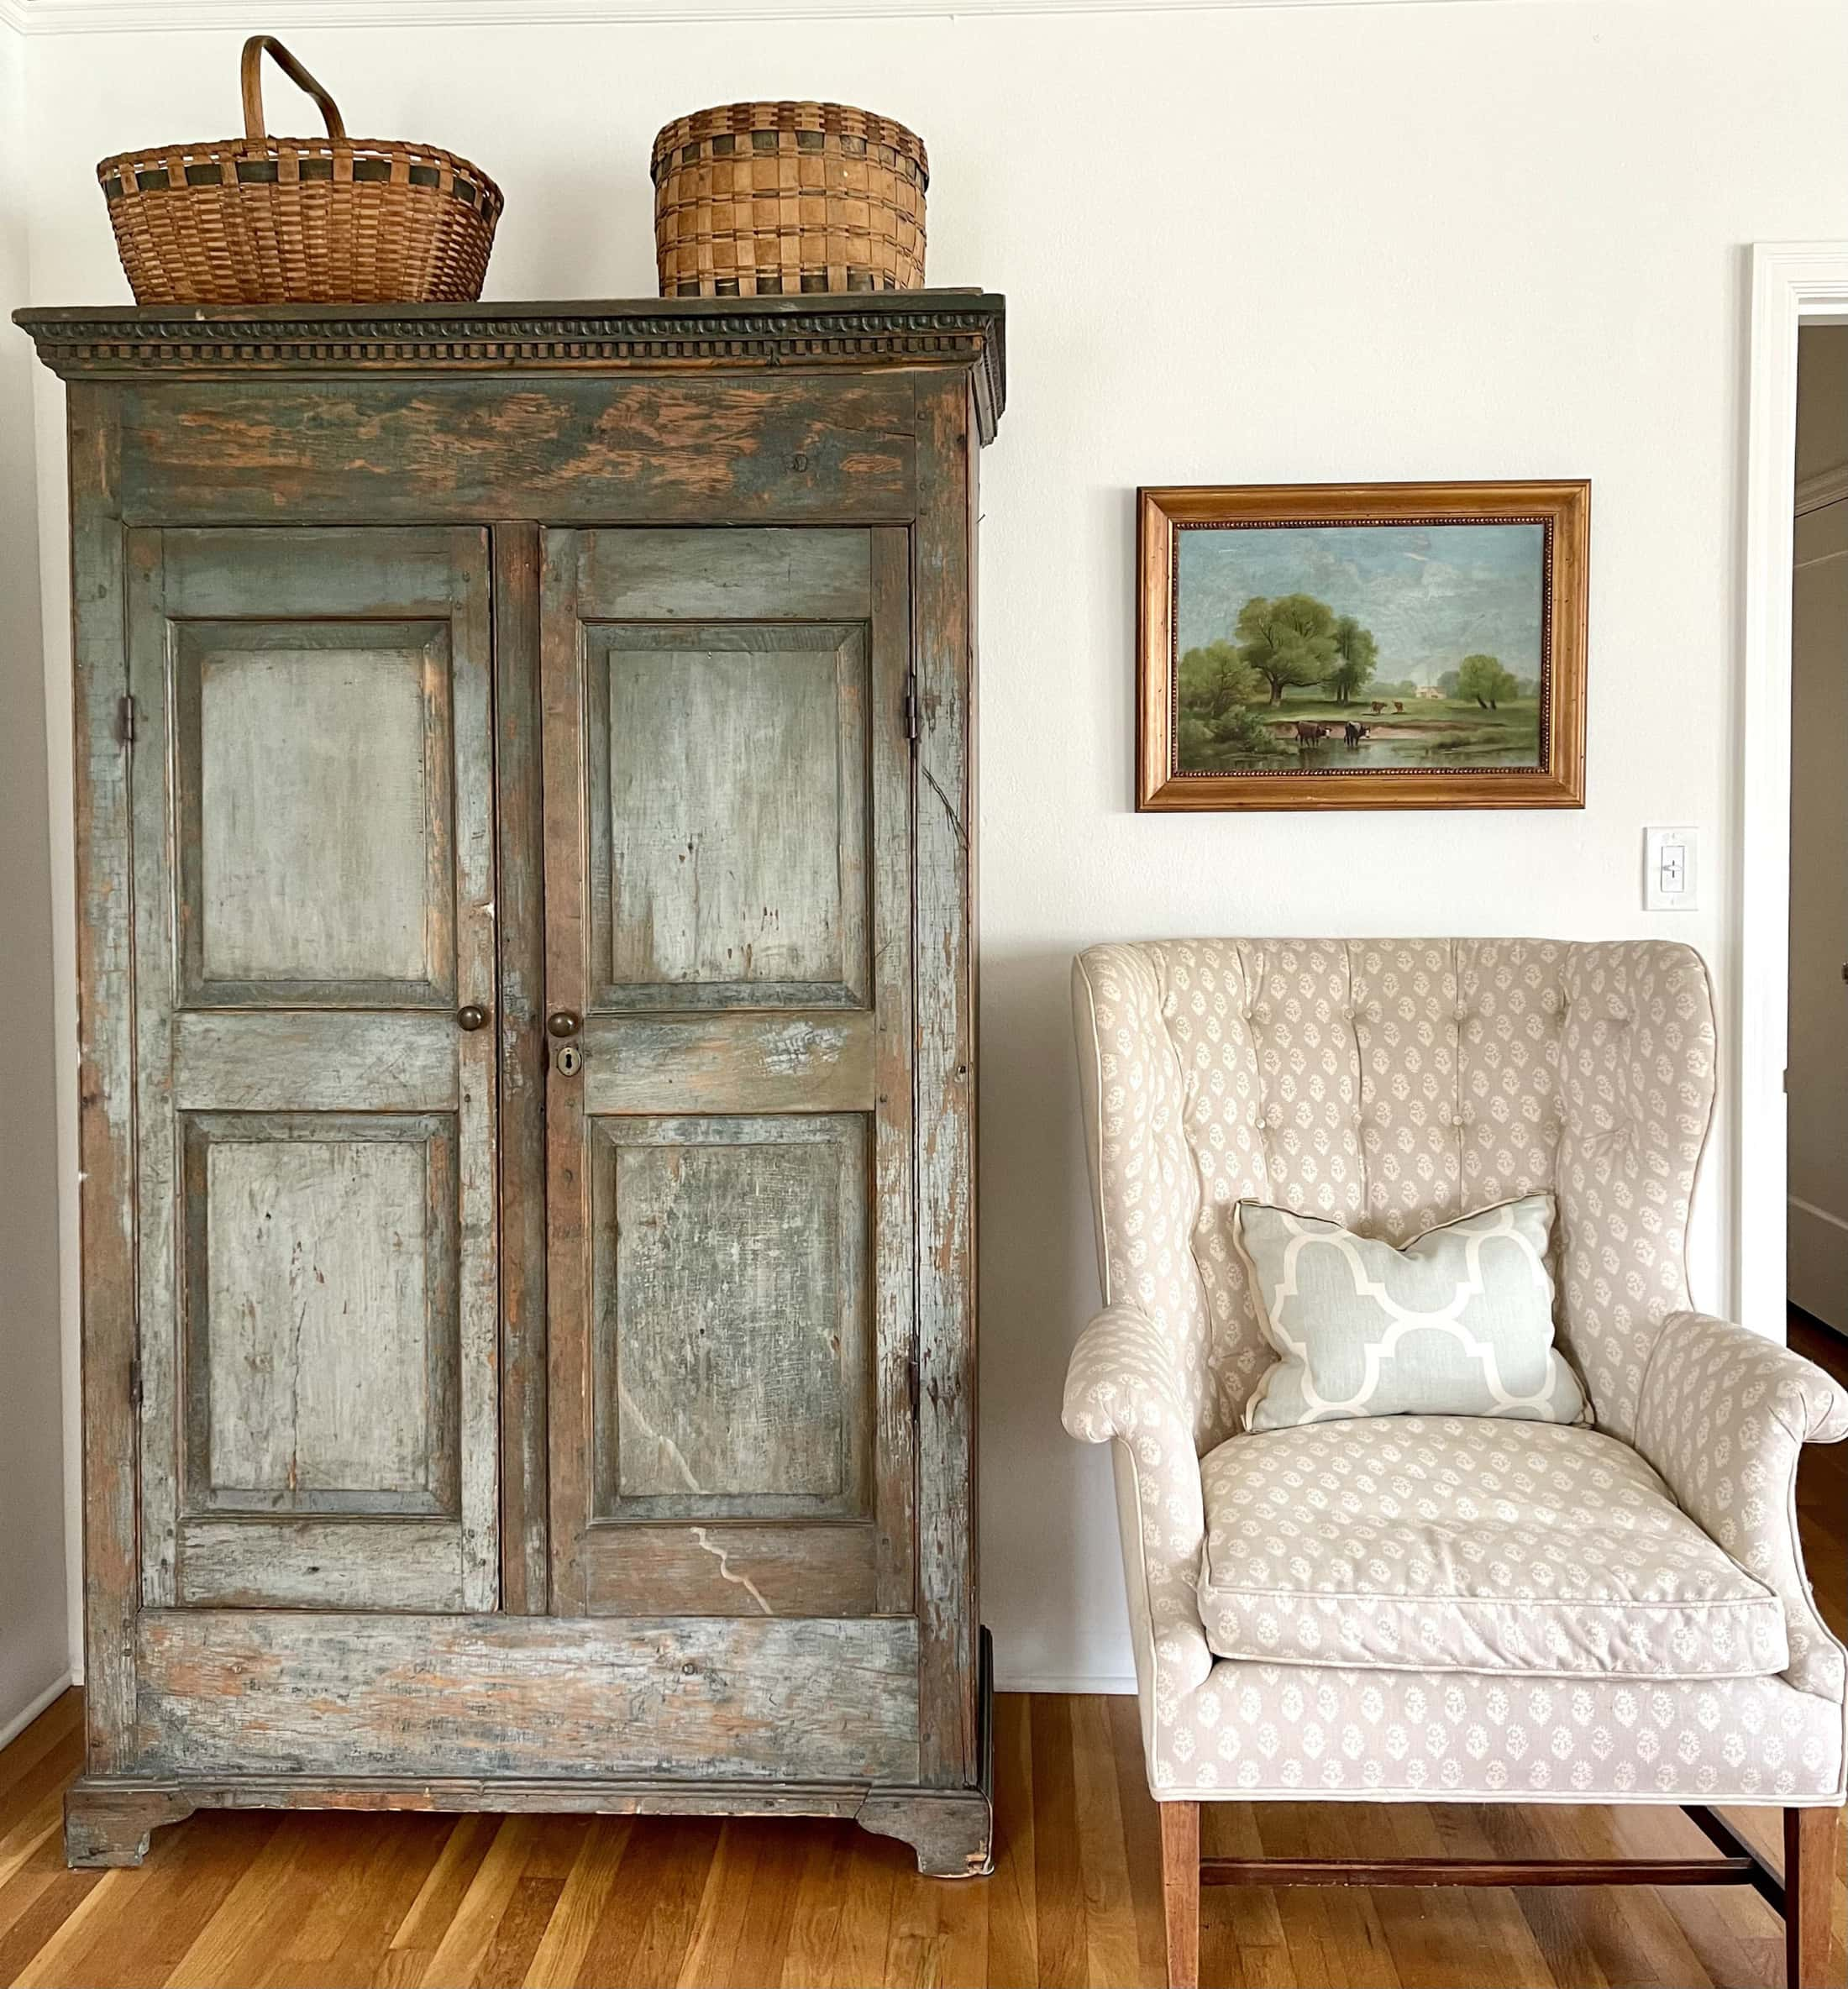 cindy hattersley's primary bedroom with antique kas